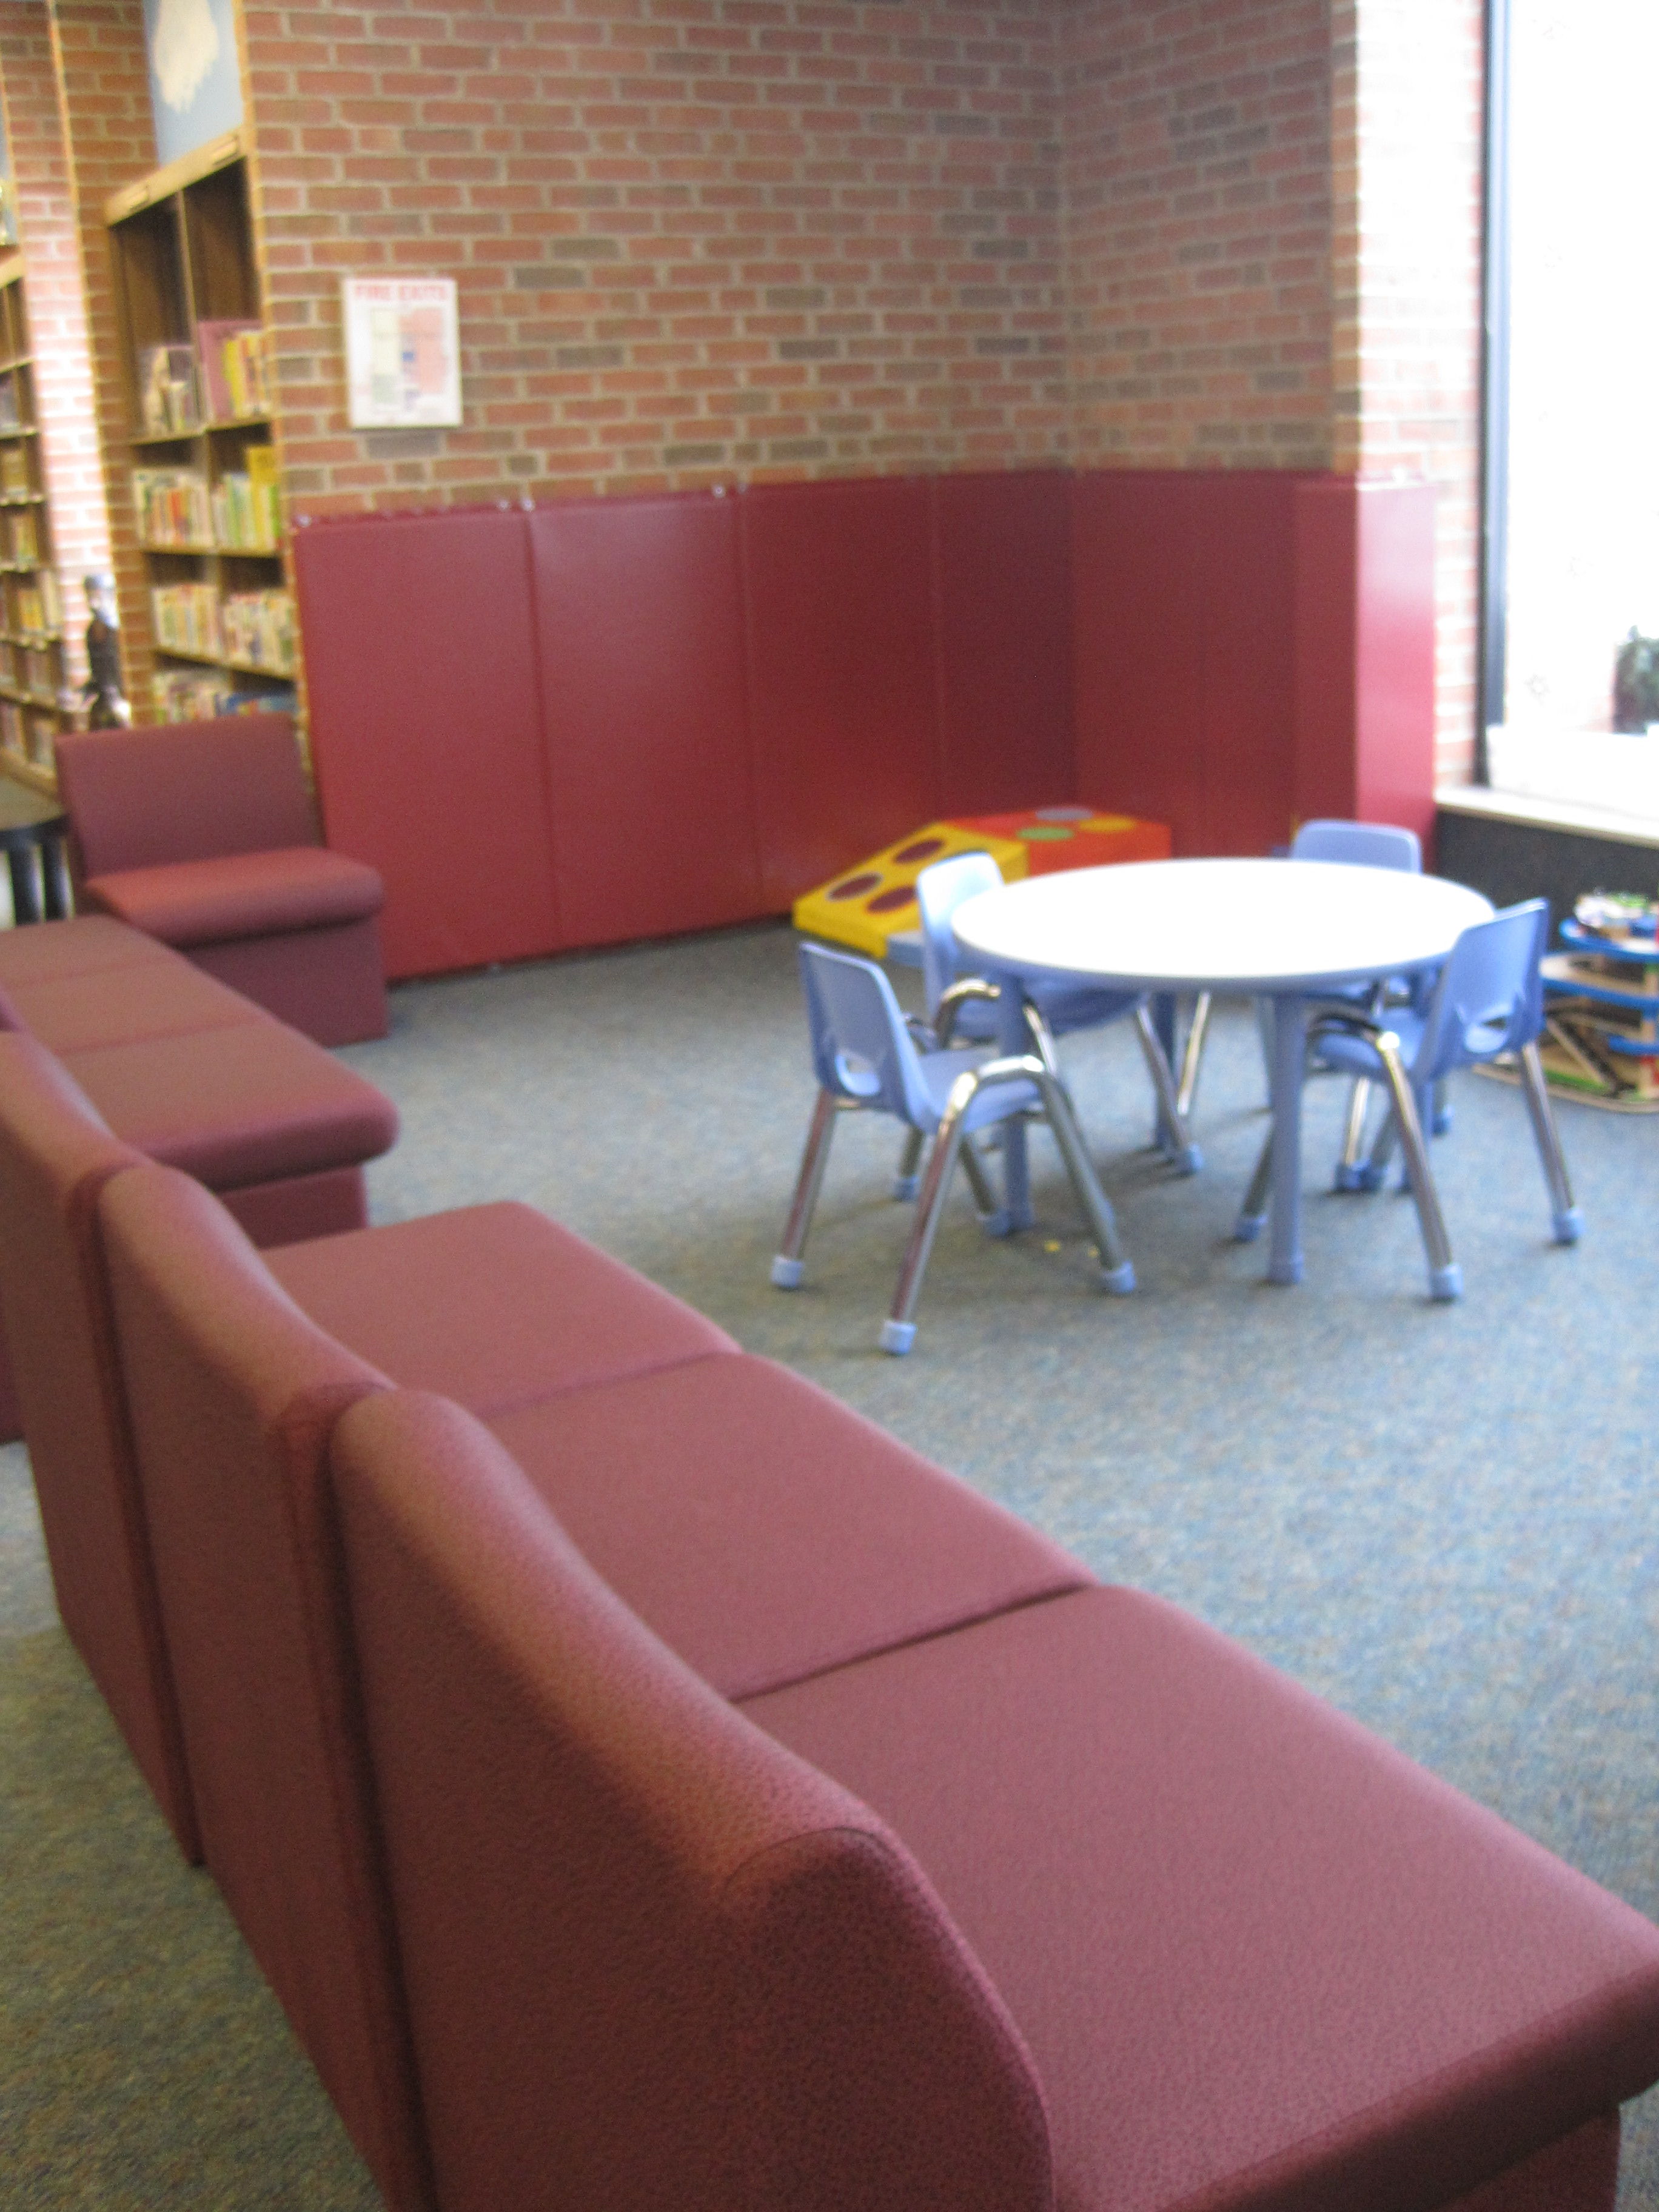 Tremont Early Lerning Center play corner and chairs